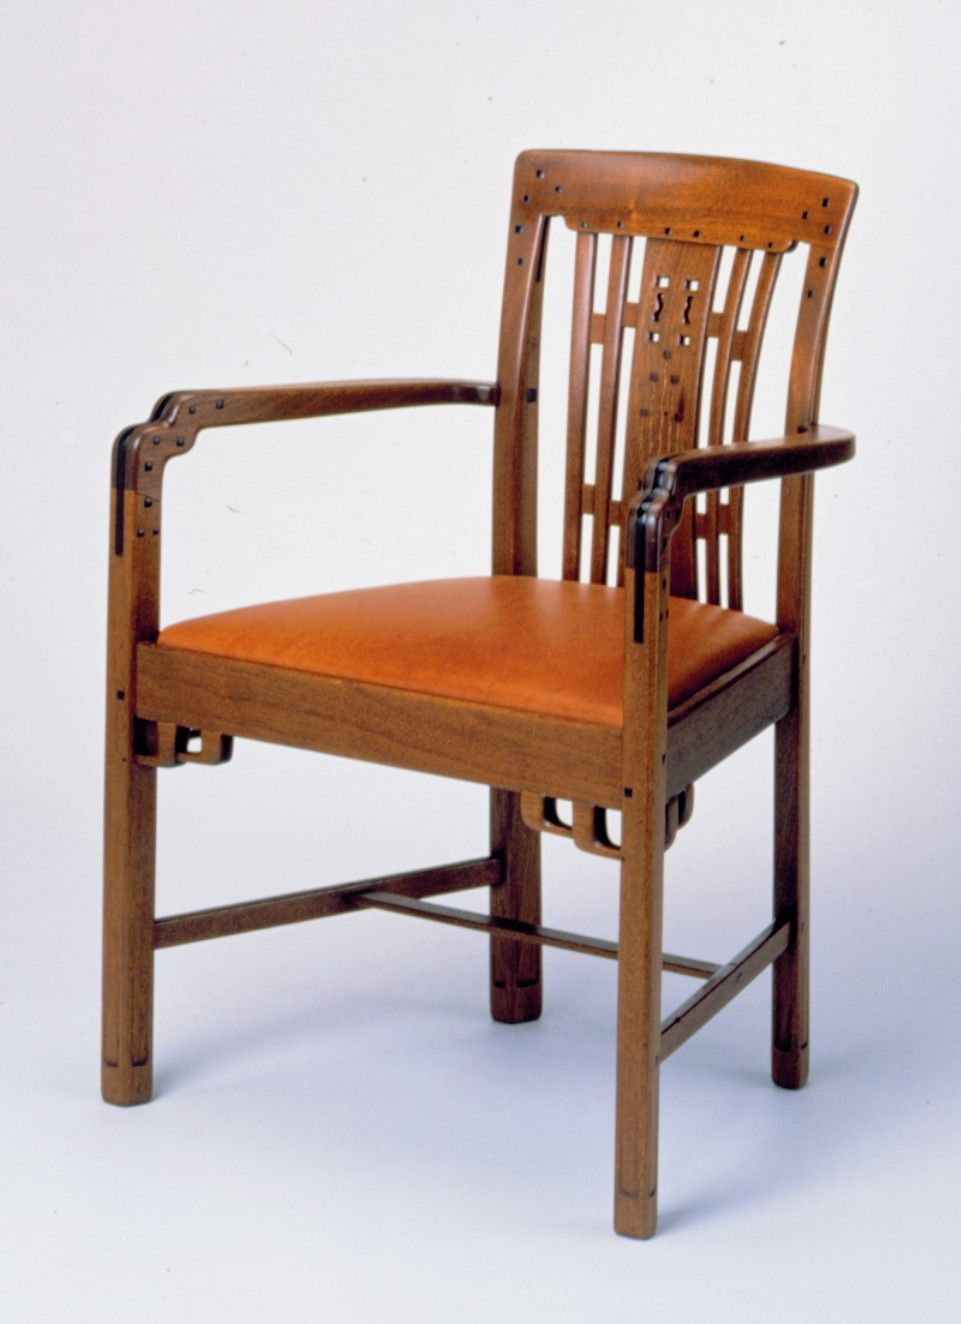 Arts and crafts furniture chair - Find This Pin And More On Arts And Crafts Objects